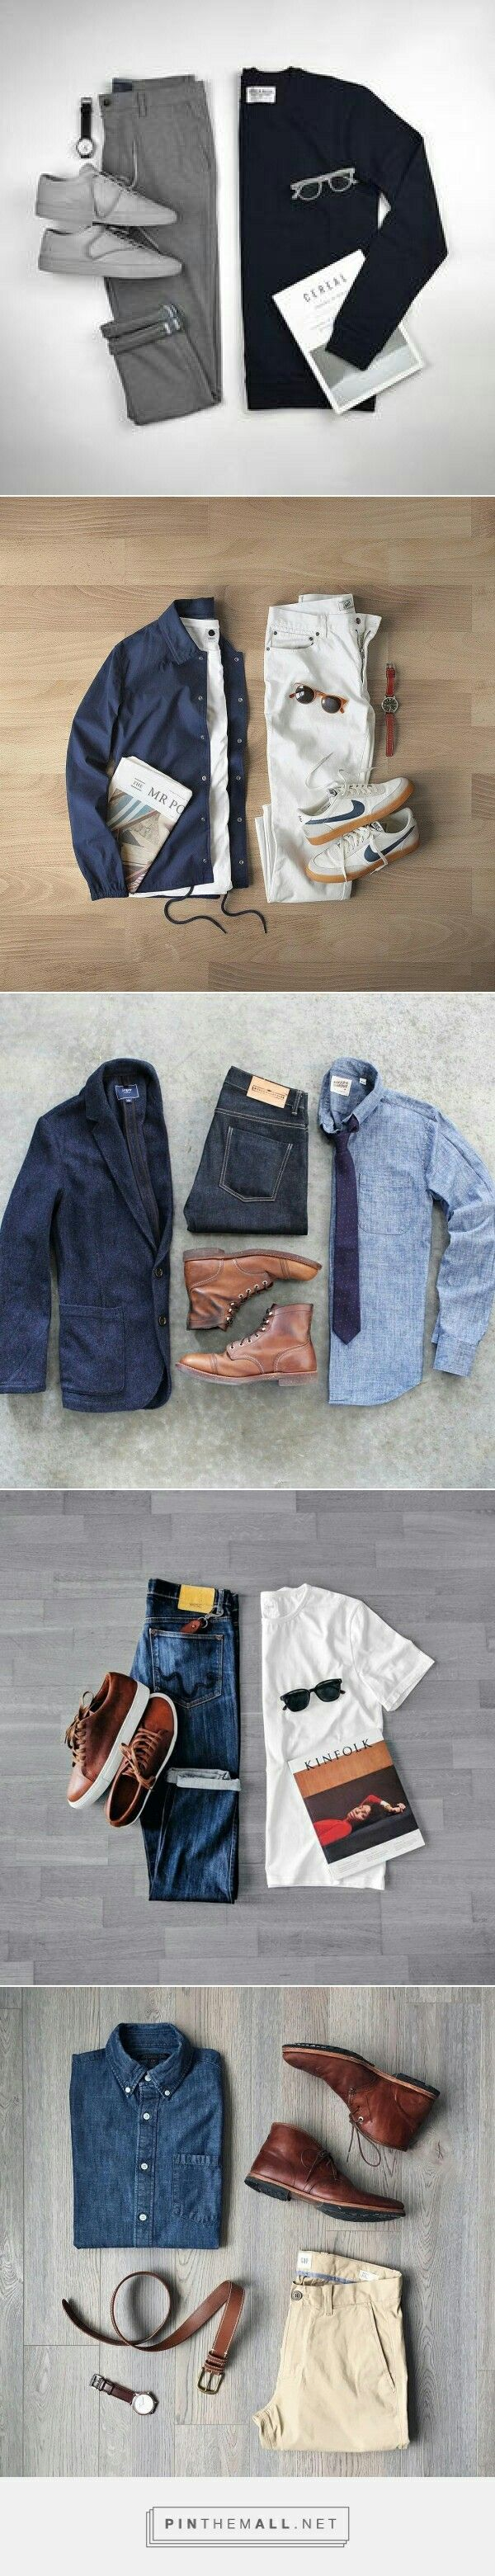 Cool Outfit Grids For Guys.